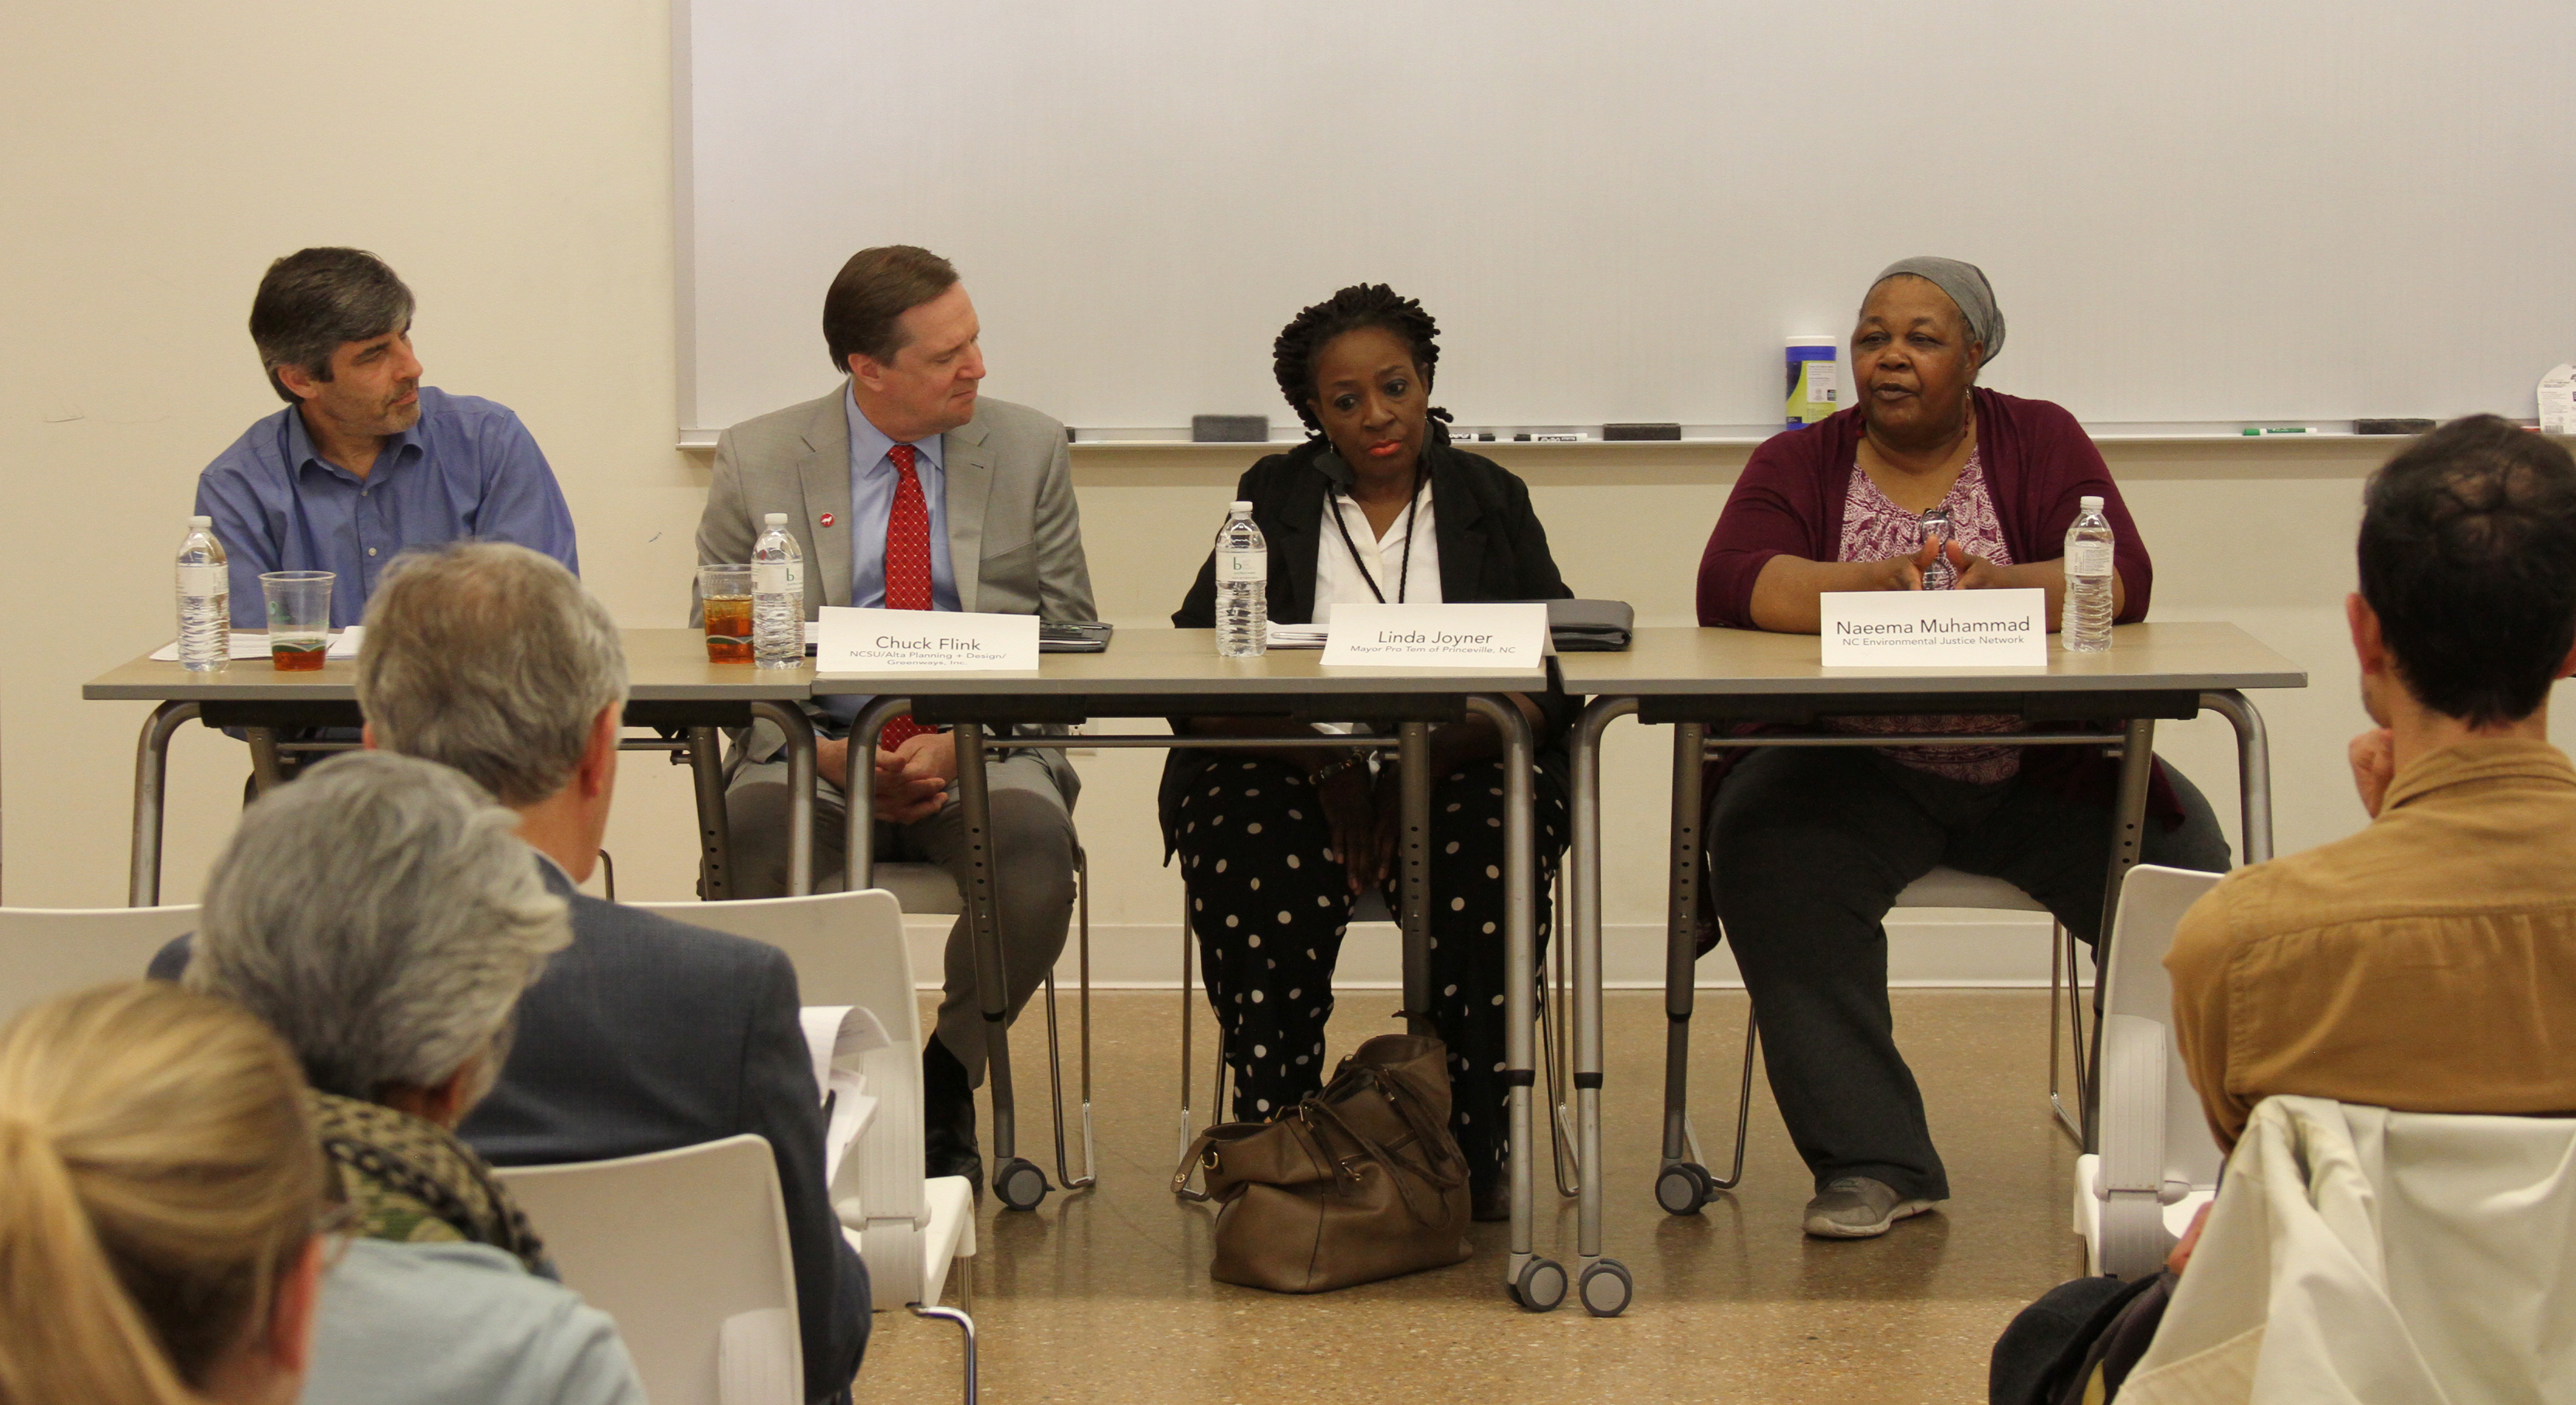 """Naeema Muhammad,organizing co-director of North Carolina Environmental Justice Network (third from right) speaks on the """"Rural Disaster Recovery and Hurricane Matthew"""" panel at the Climate Change and Resilience Symposium on April 20, 2018. The panel also included (from left) Dr. Larry Engel,professor in the UNC Department of Epidemiology; Chuck Flink,professor in Landscape Architecture at NC State University; and Linda Joyner,Mayor Pro Tem of Princeville, N.C."""